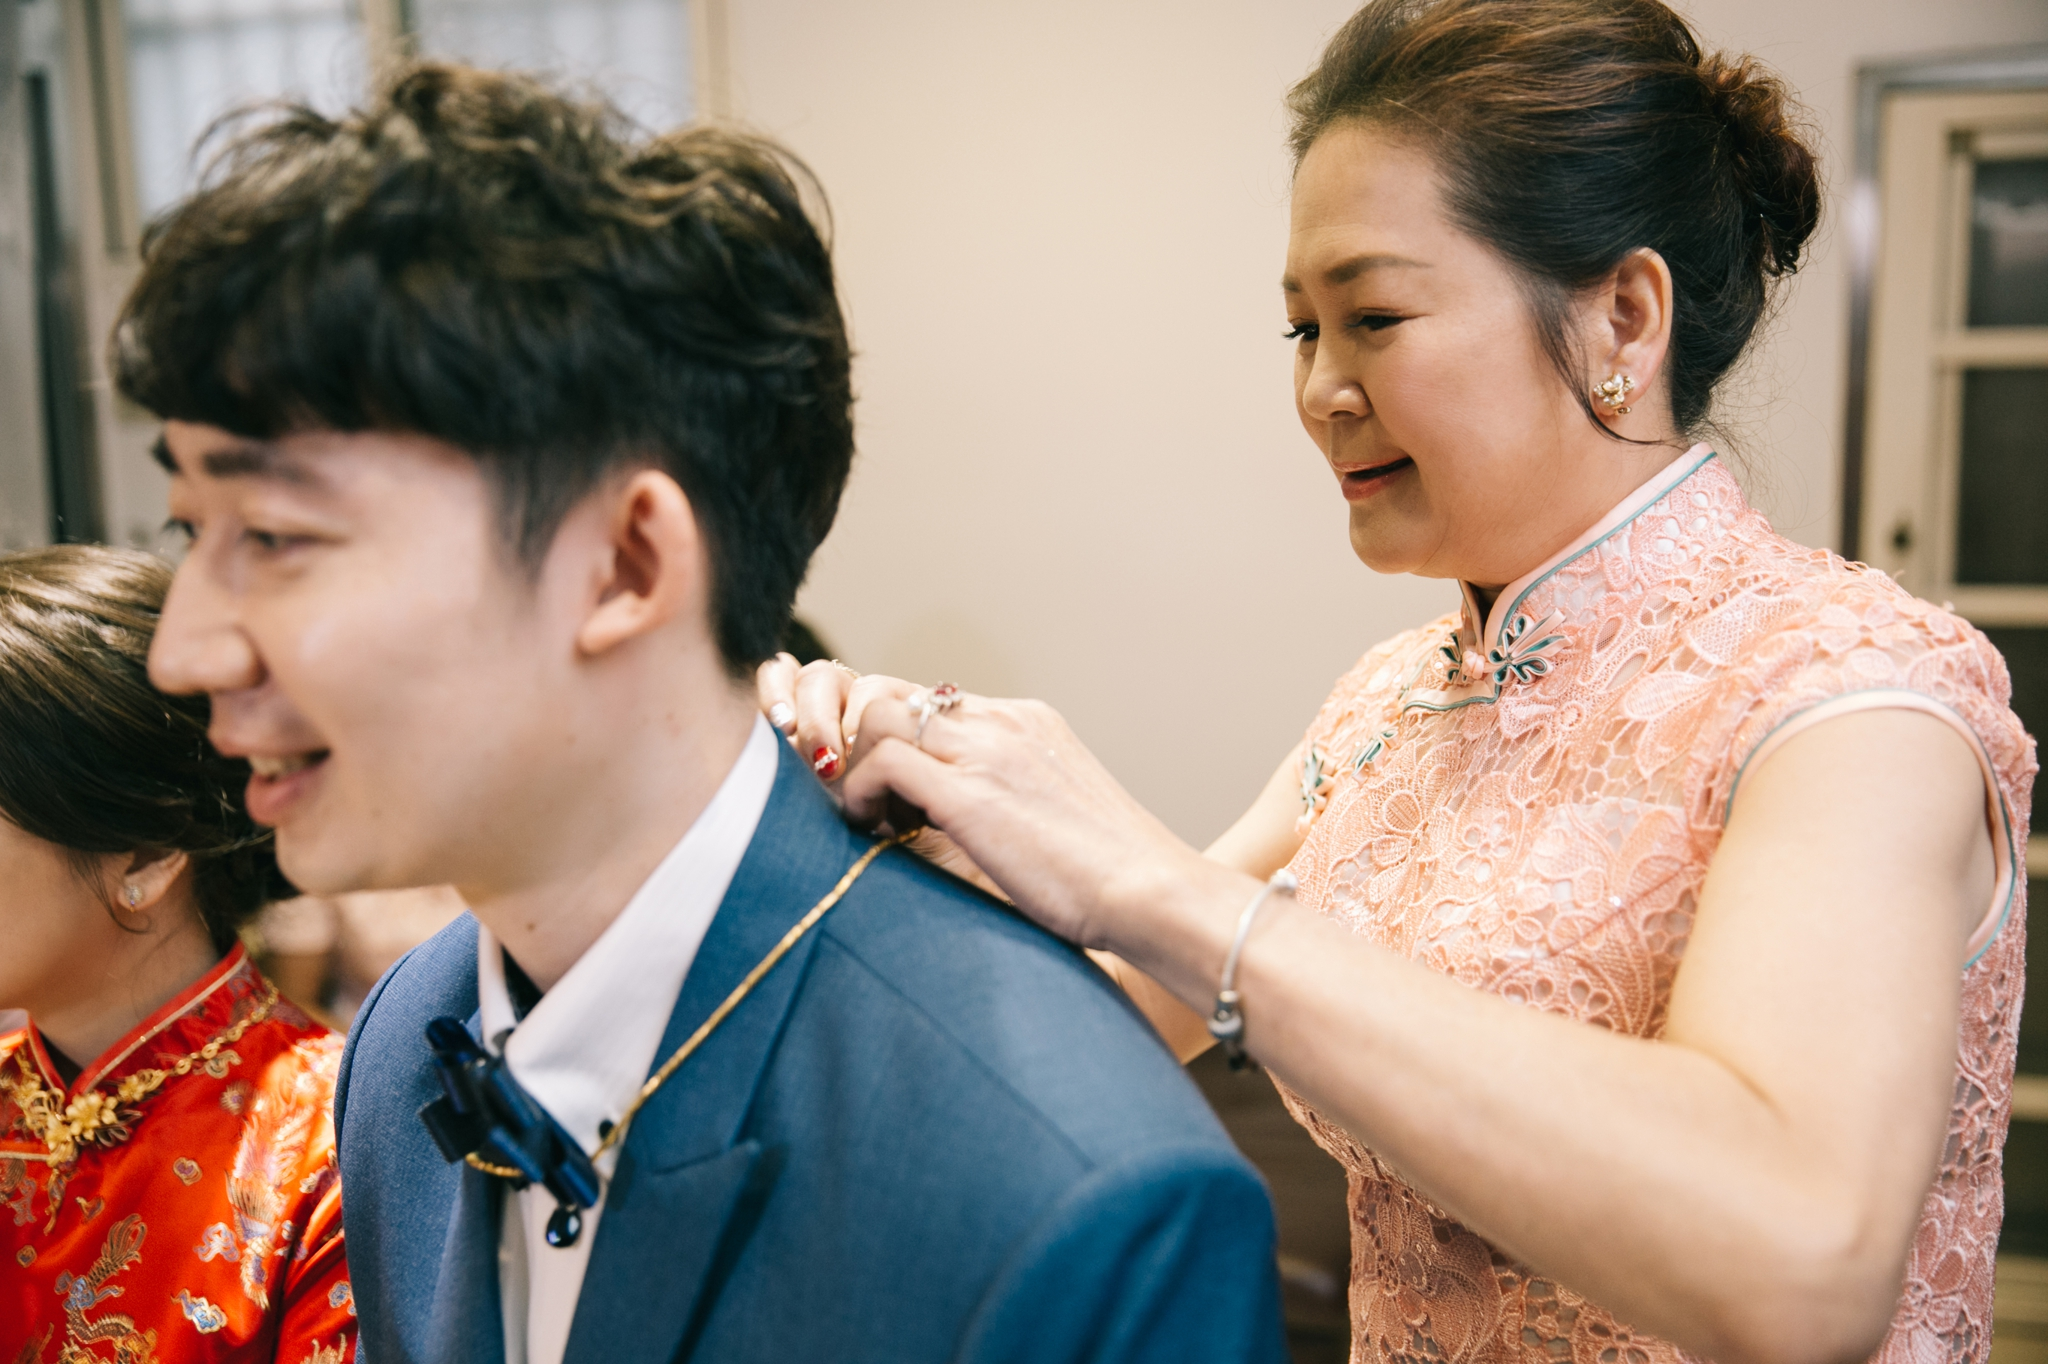 Keddy+Richard-wedding-新莊頤品飯店-047.jpg